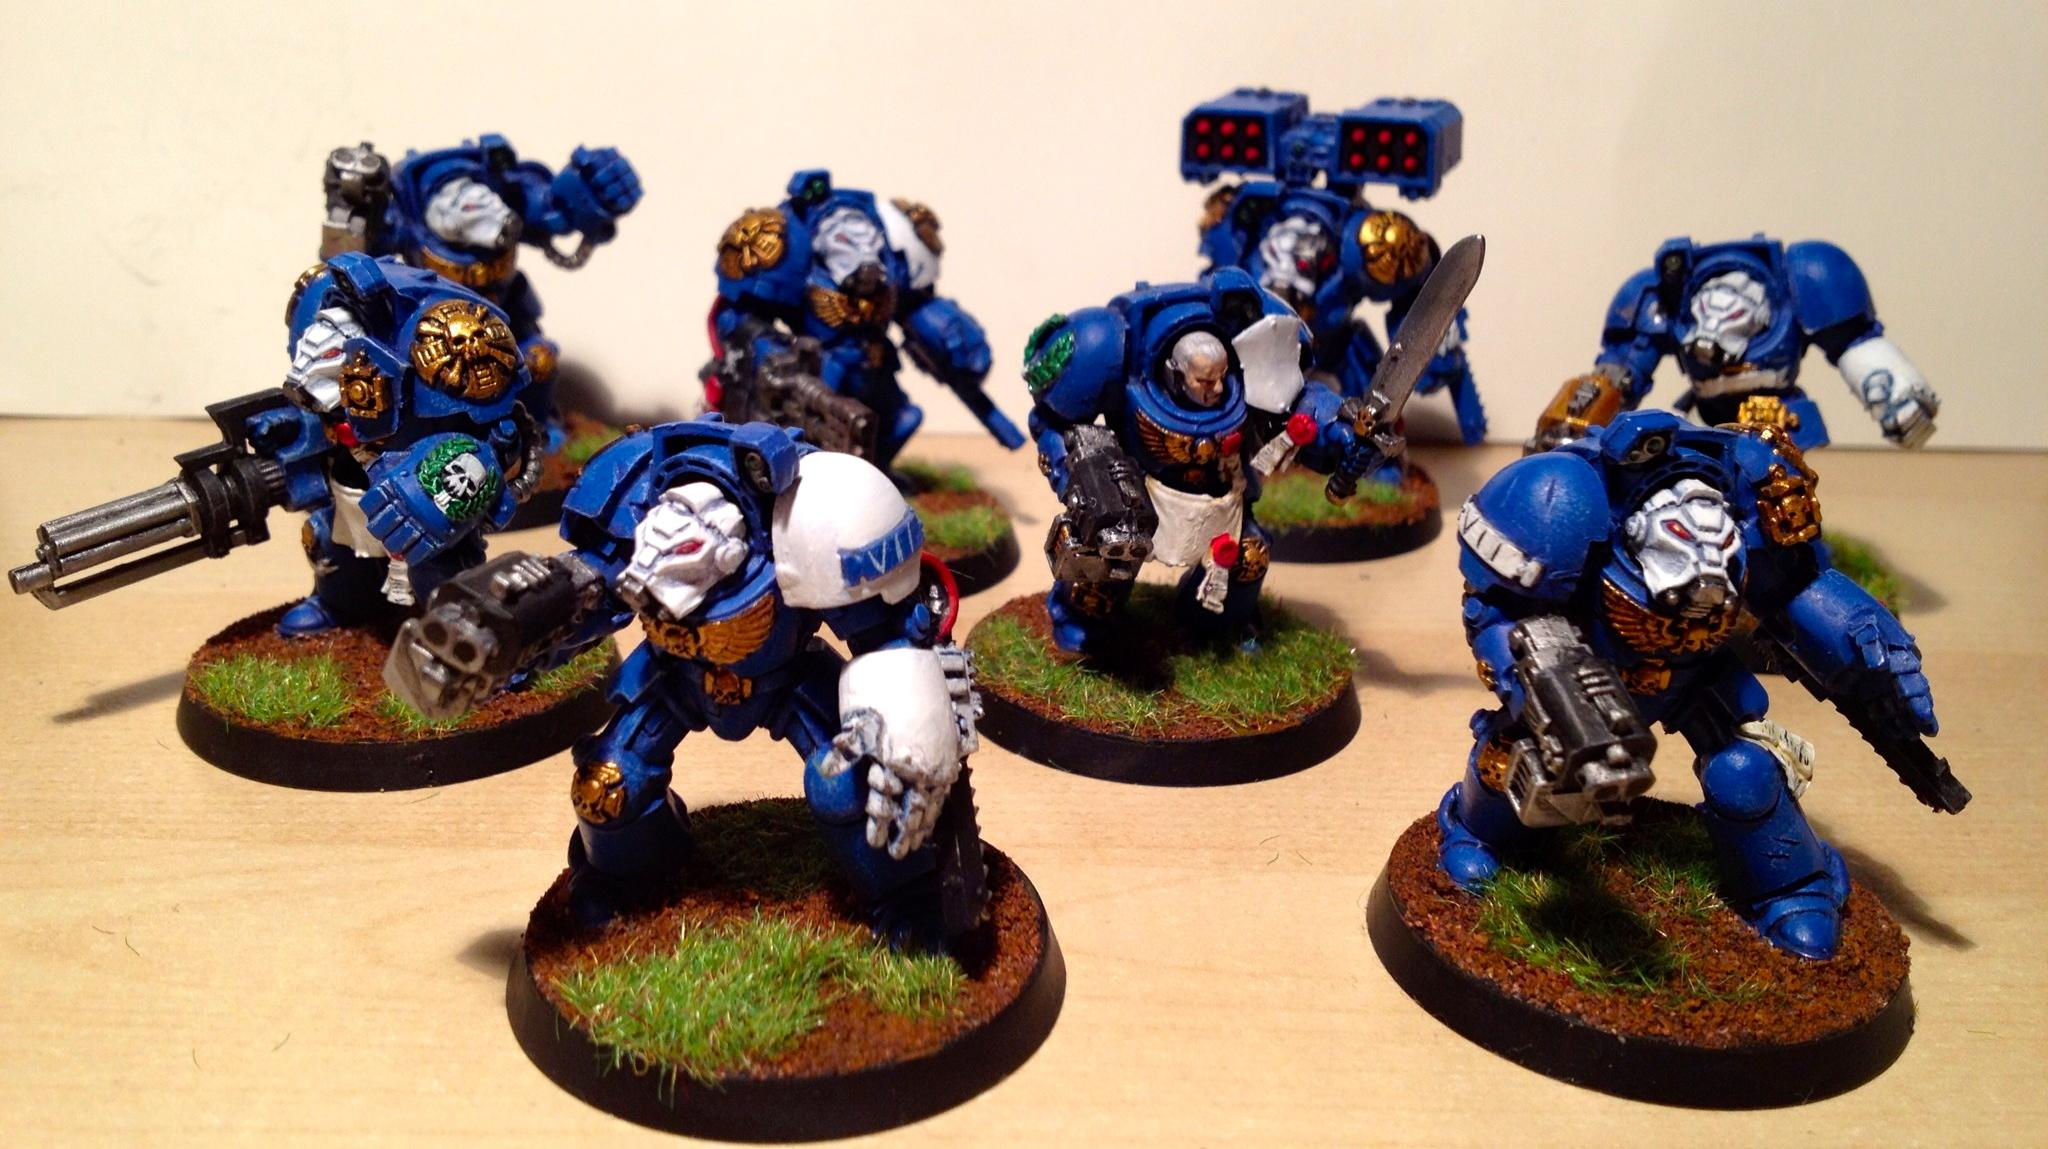 Assault Cannon, Chainfist, Cyclone Missile Launcher, Power Fist, Terminator Armor, Ultramarines